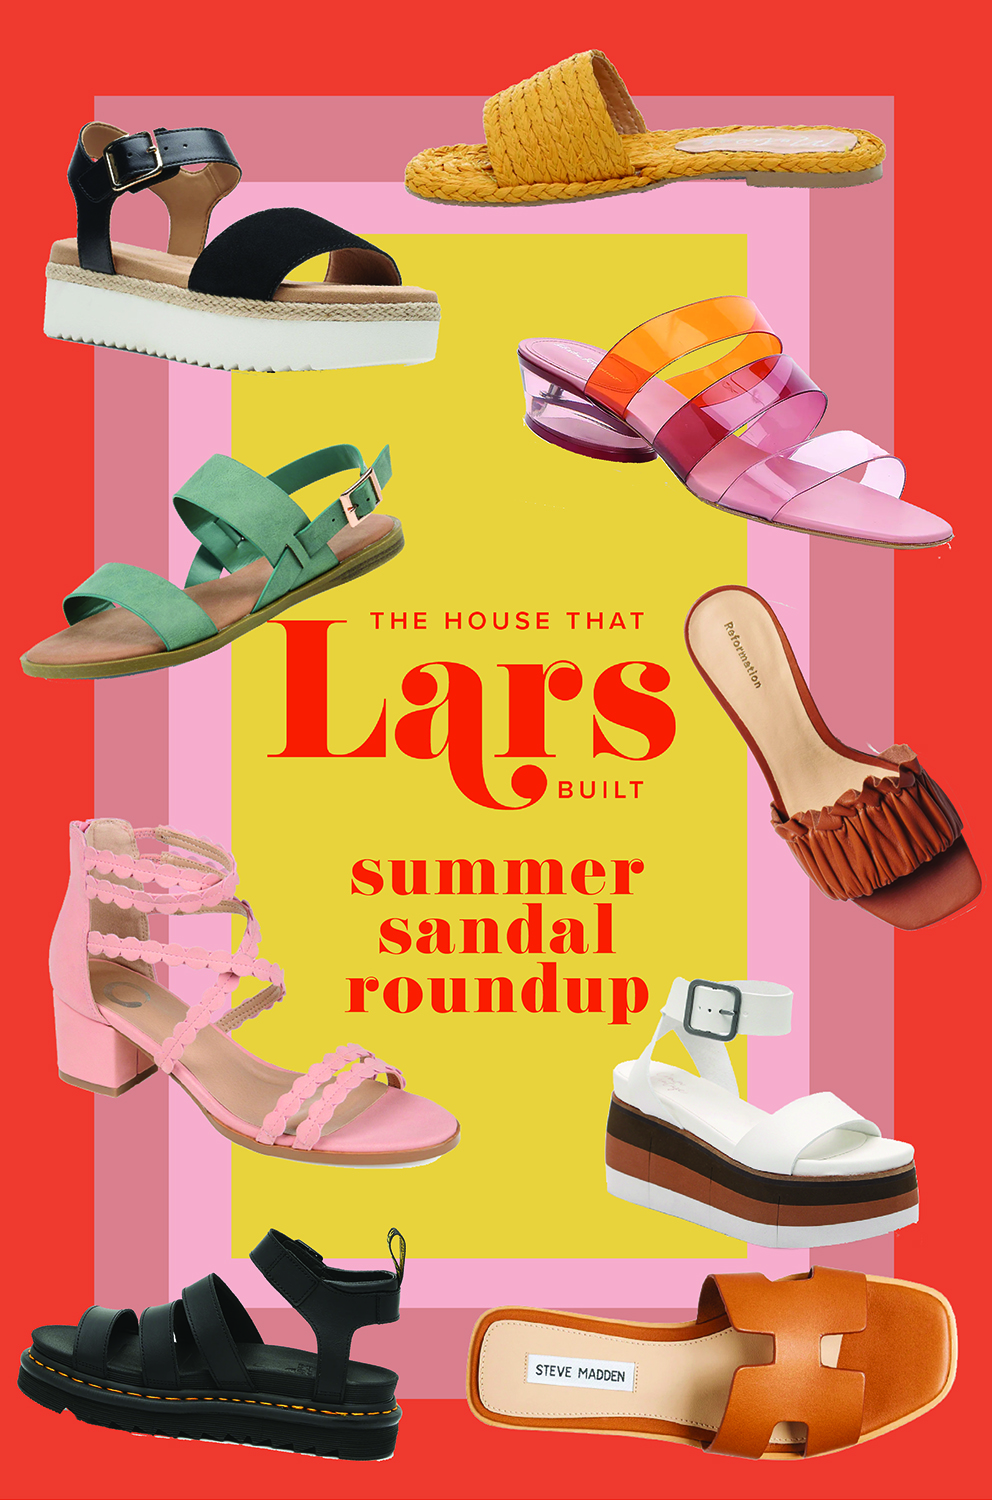 several summery sandals on an orange, pink, and yellow geometric background with the words